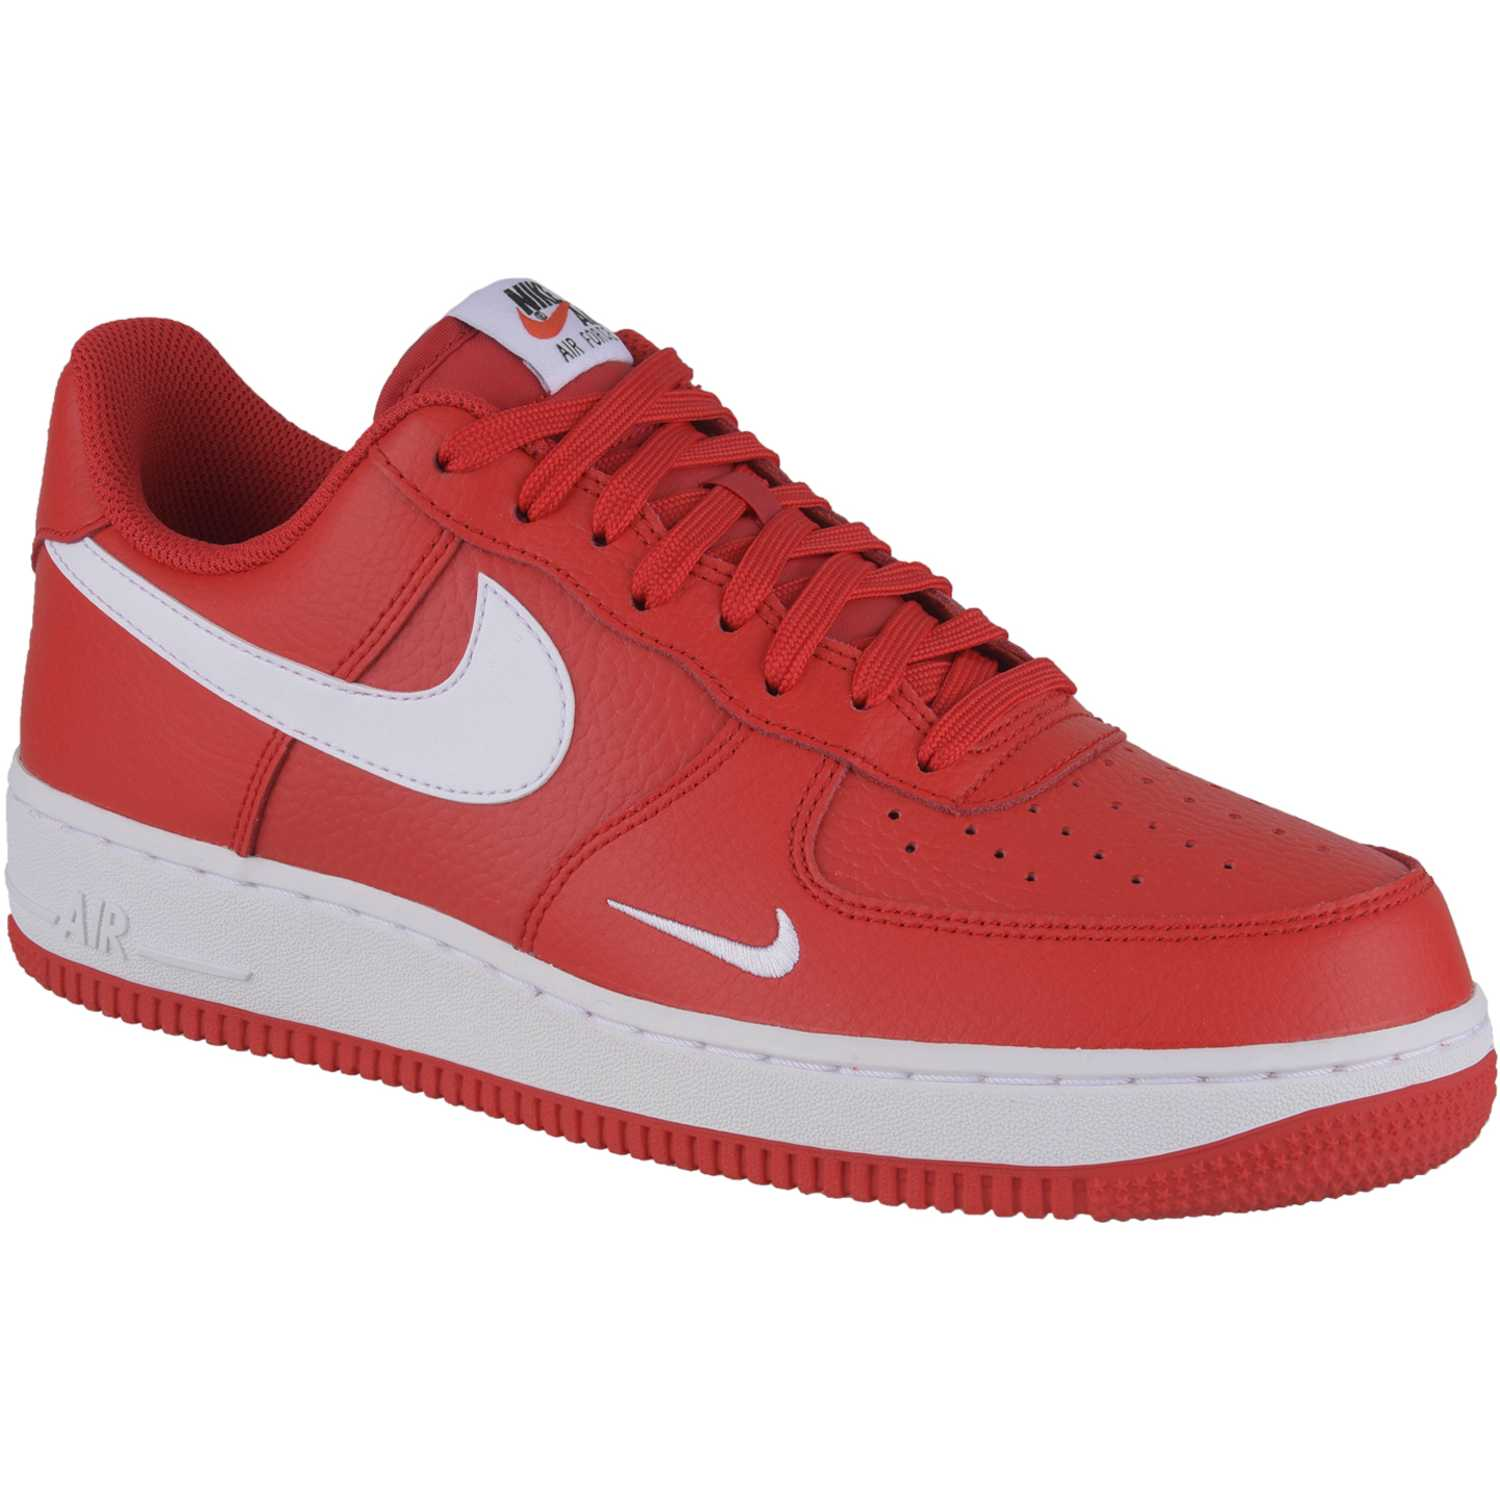 Air Force 1 Zapatillas de correr